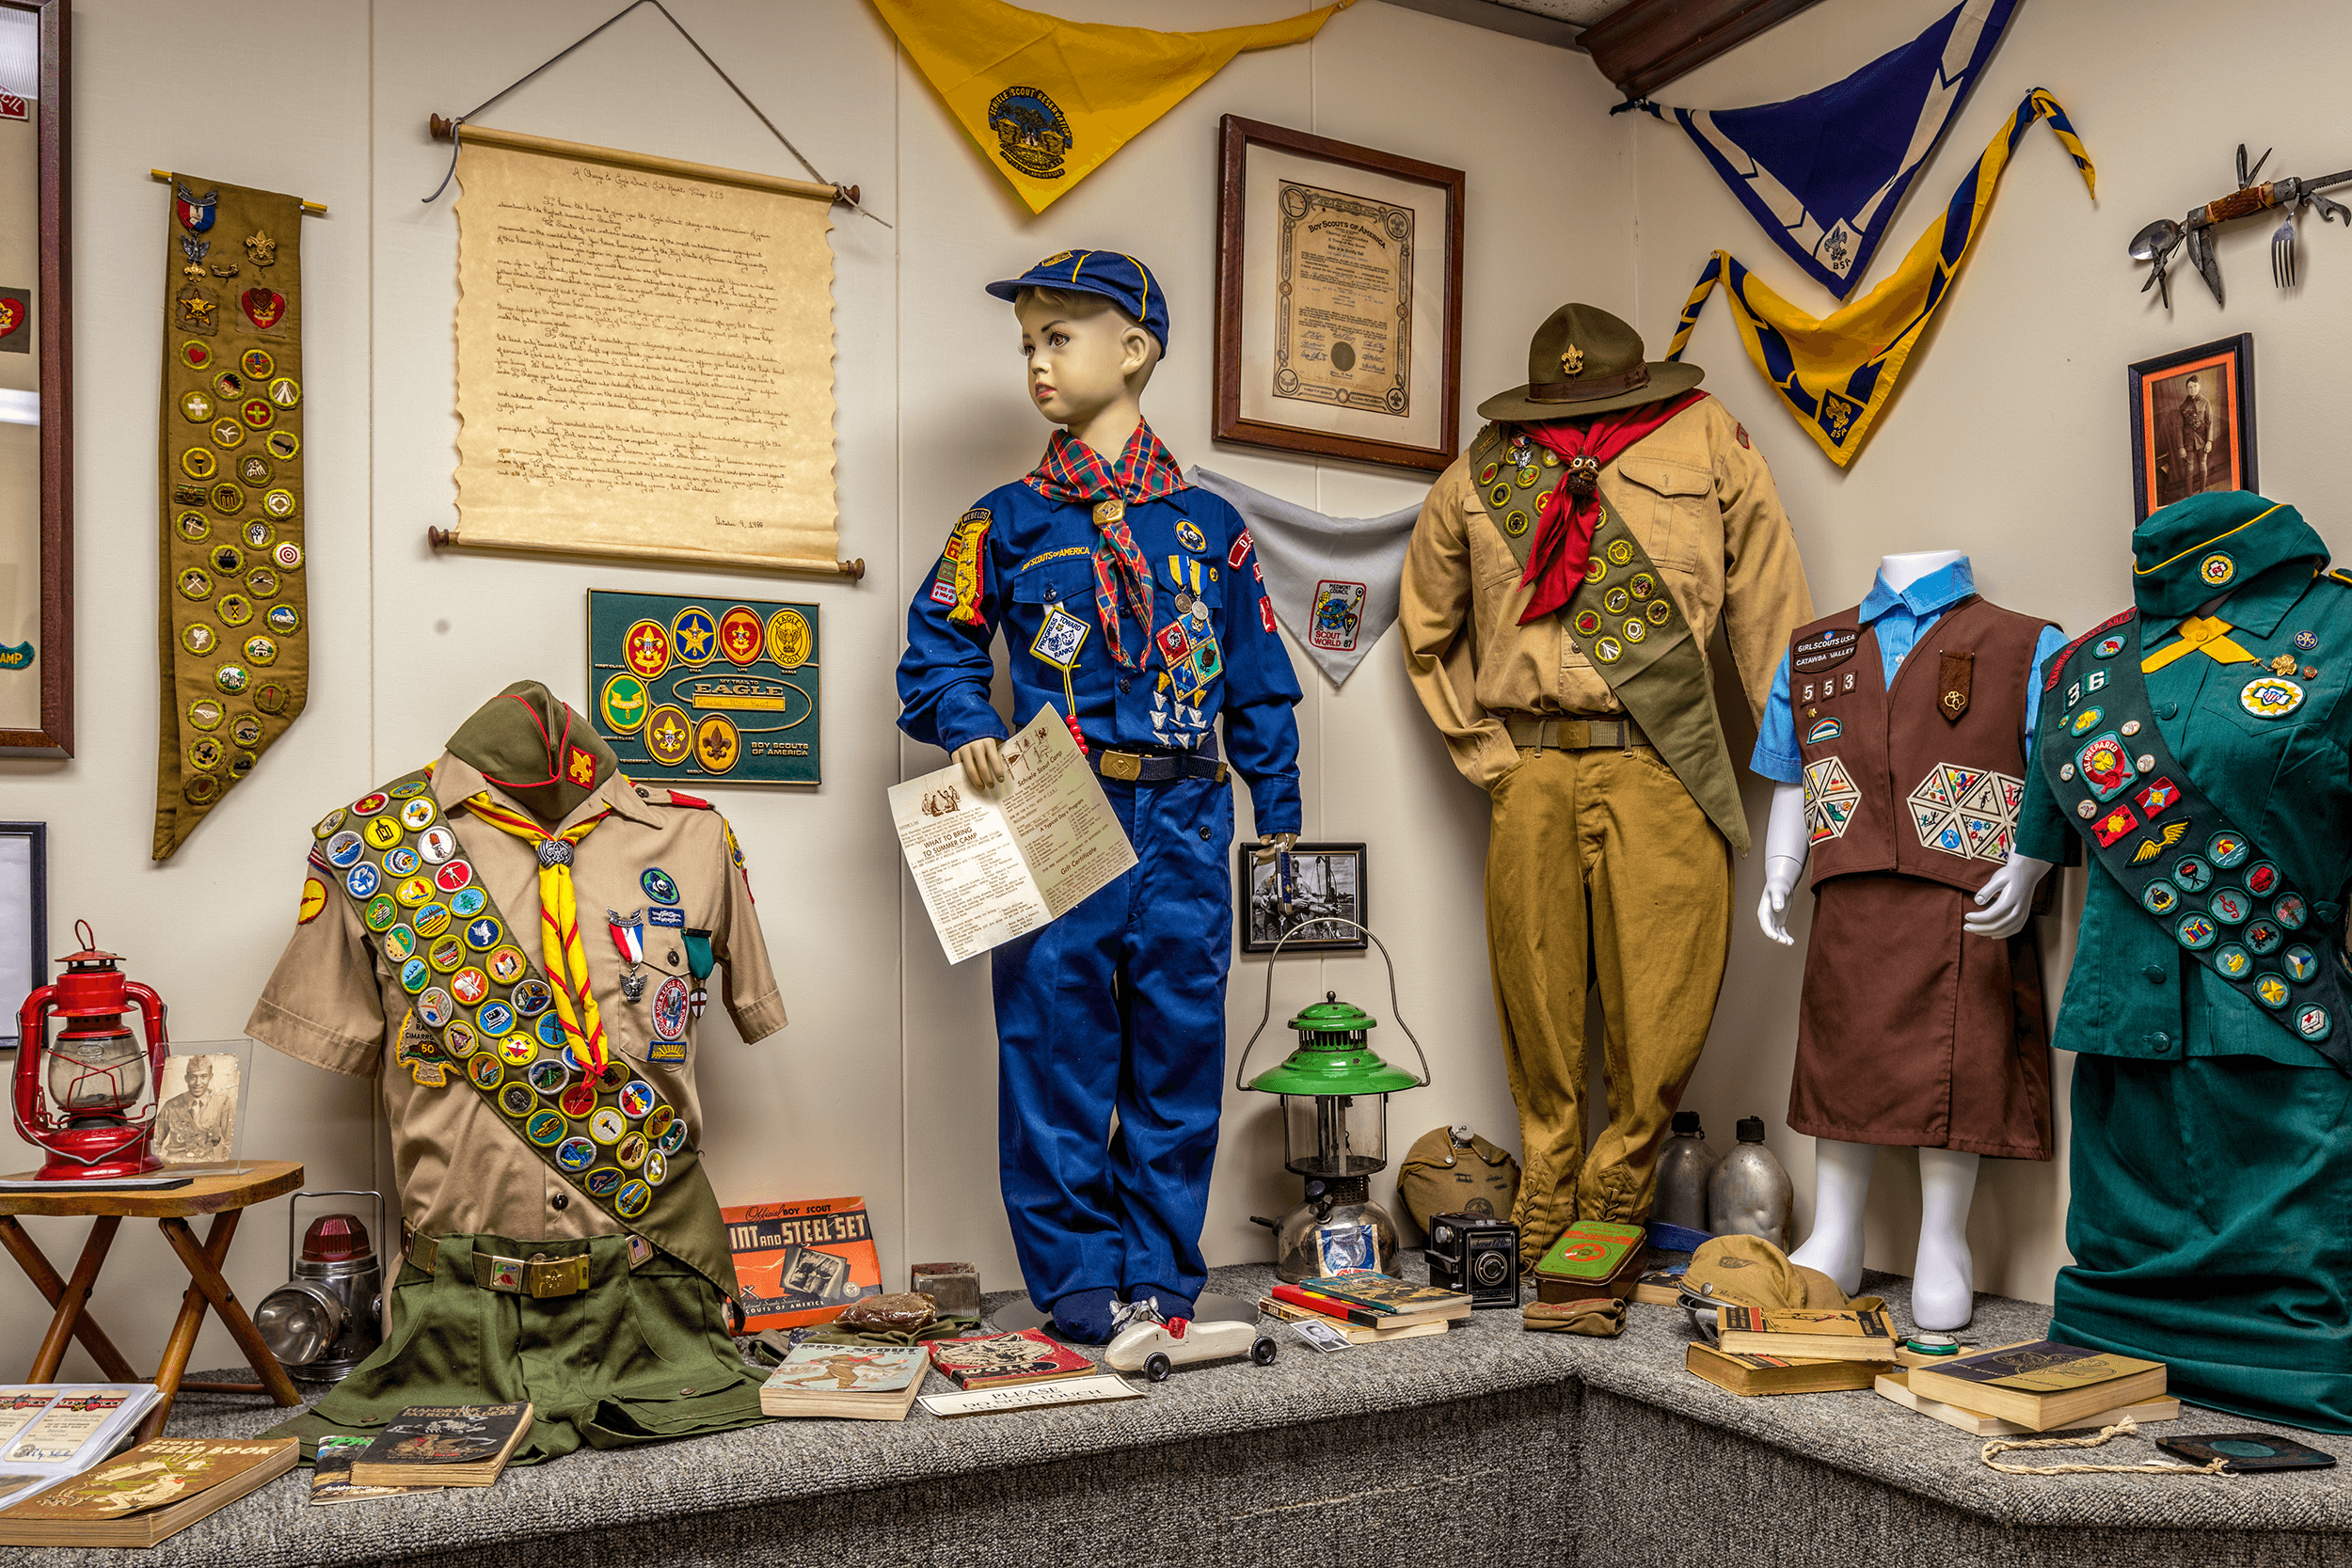 The museum is home to many extensive collections, which were donated by Burke County residents. Featured here is the collection of Boy Scouts and Girl Scouts memorabilia including badges and uniforms from the 1930s through to the 1970s.